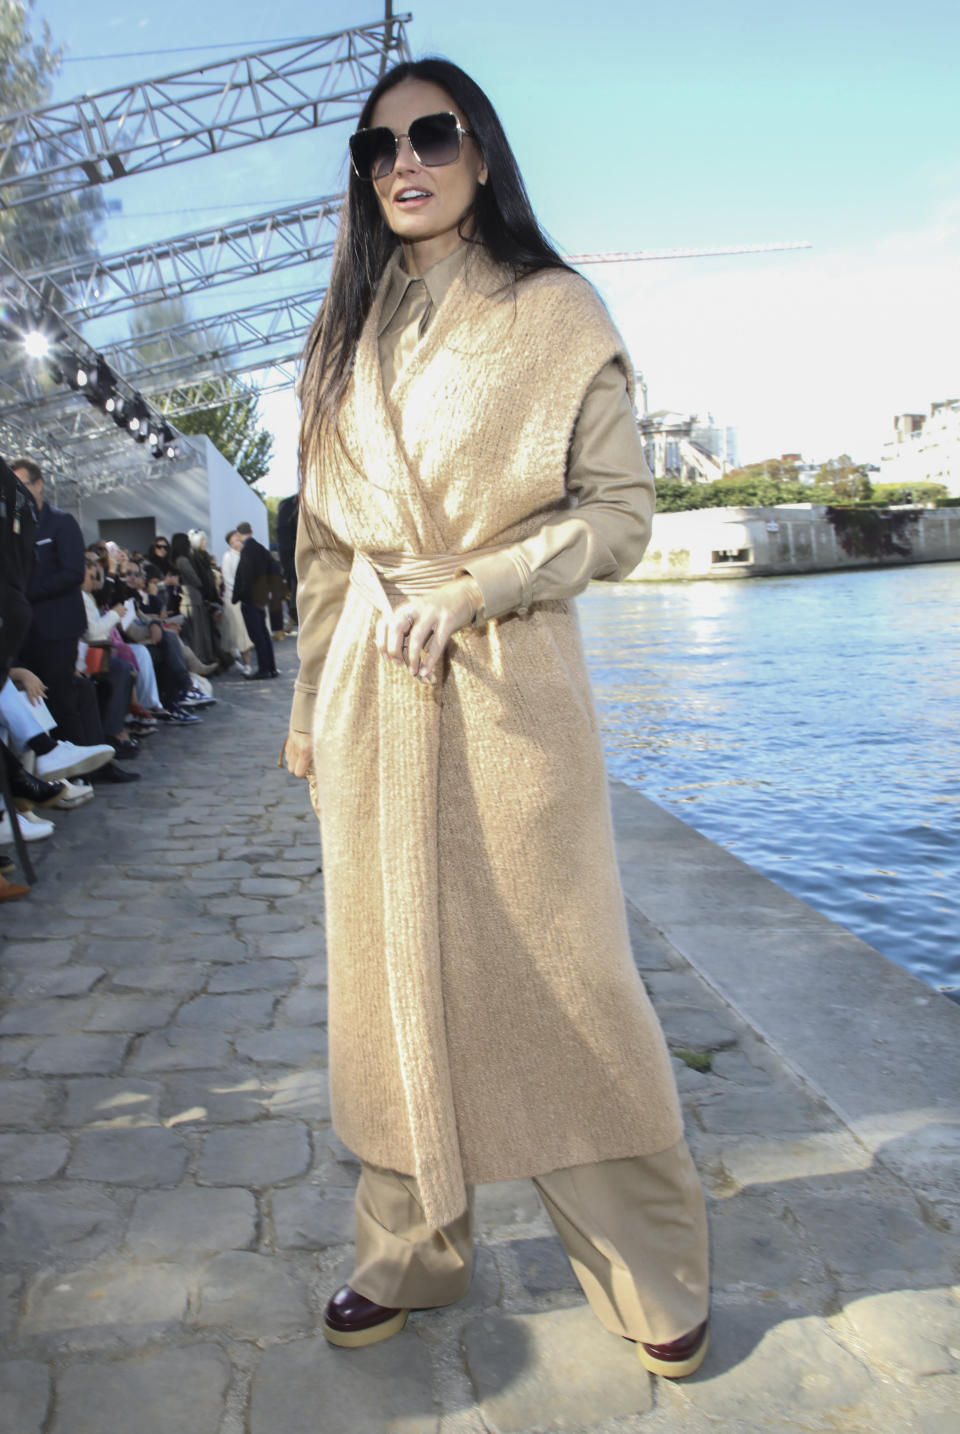 Demi Moore arrives for the Chloe Spring-Summer 2022 ready-to-wear fashion show presented in Paris, Thursday, Sept. 30, 2021. (Photo by Vianney Le Caer/Invision/AP)